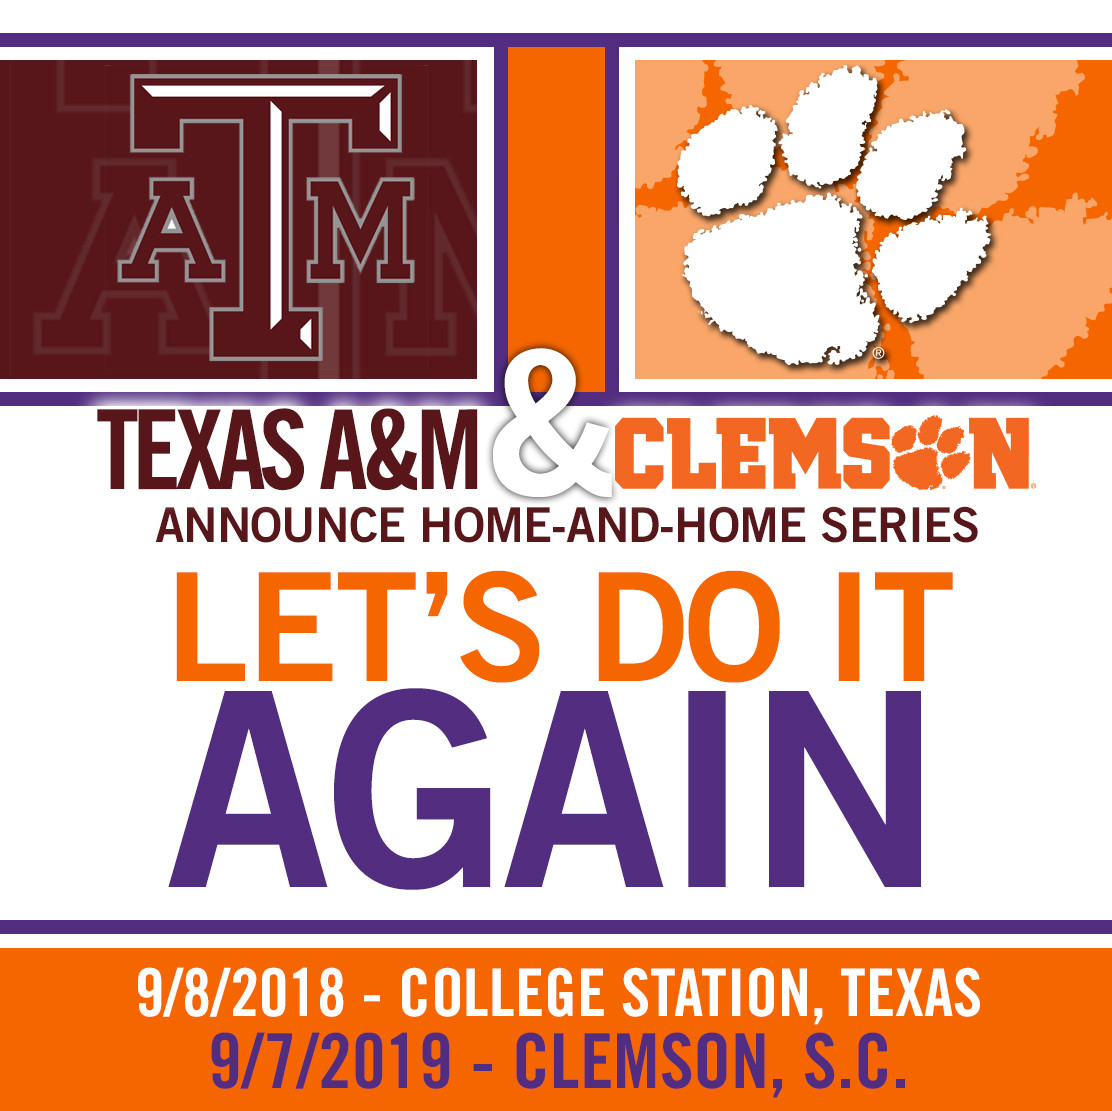 Tigers to Play Texas A&M